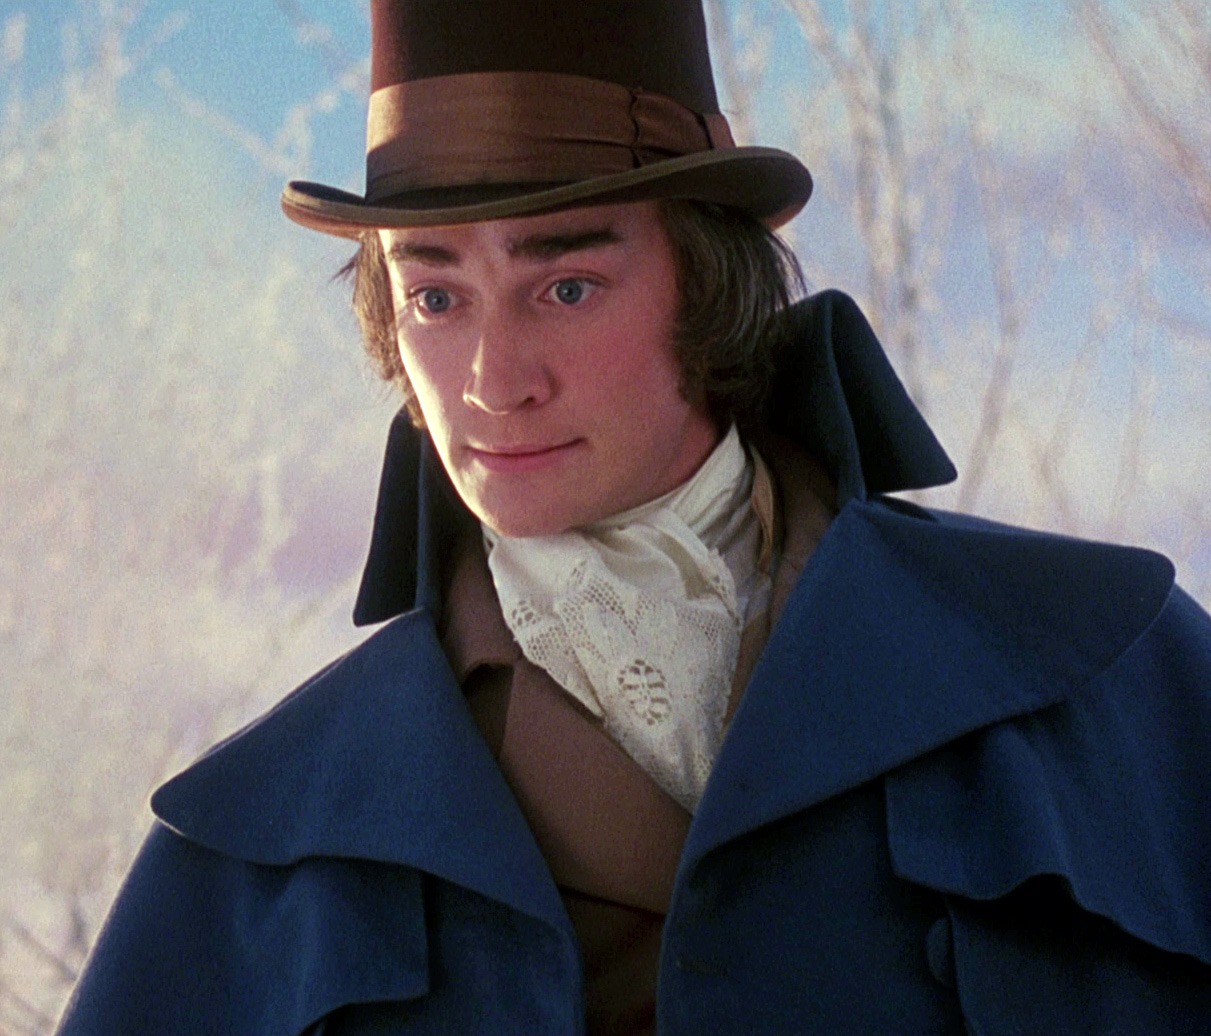 File:Youngscrooge.jpg